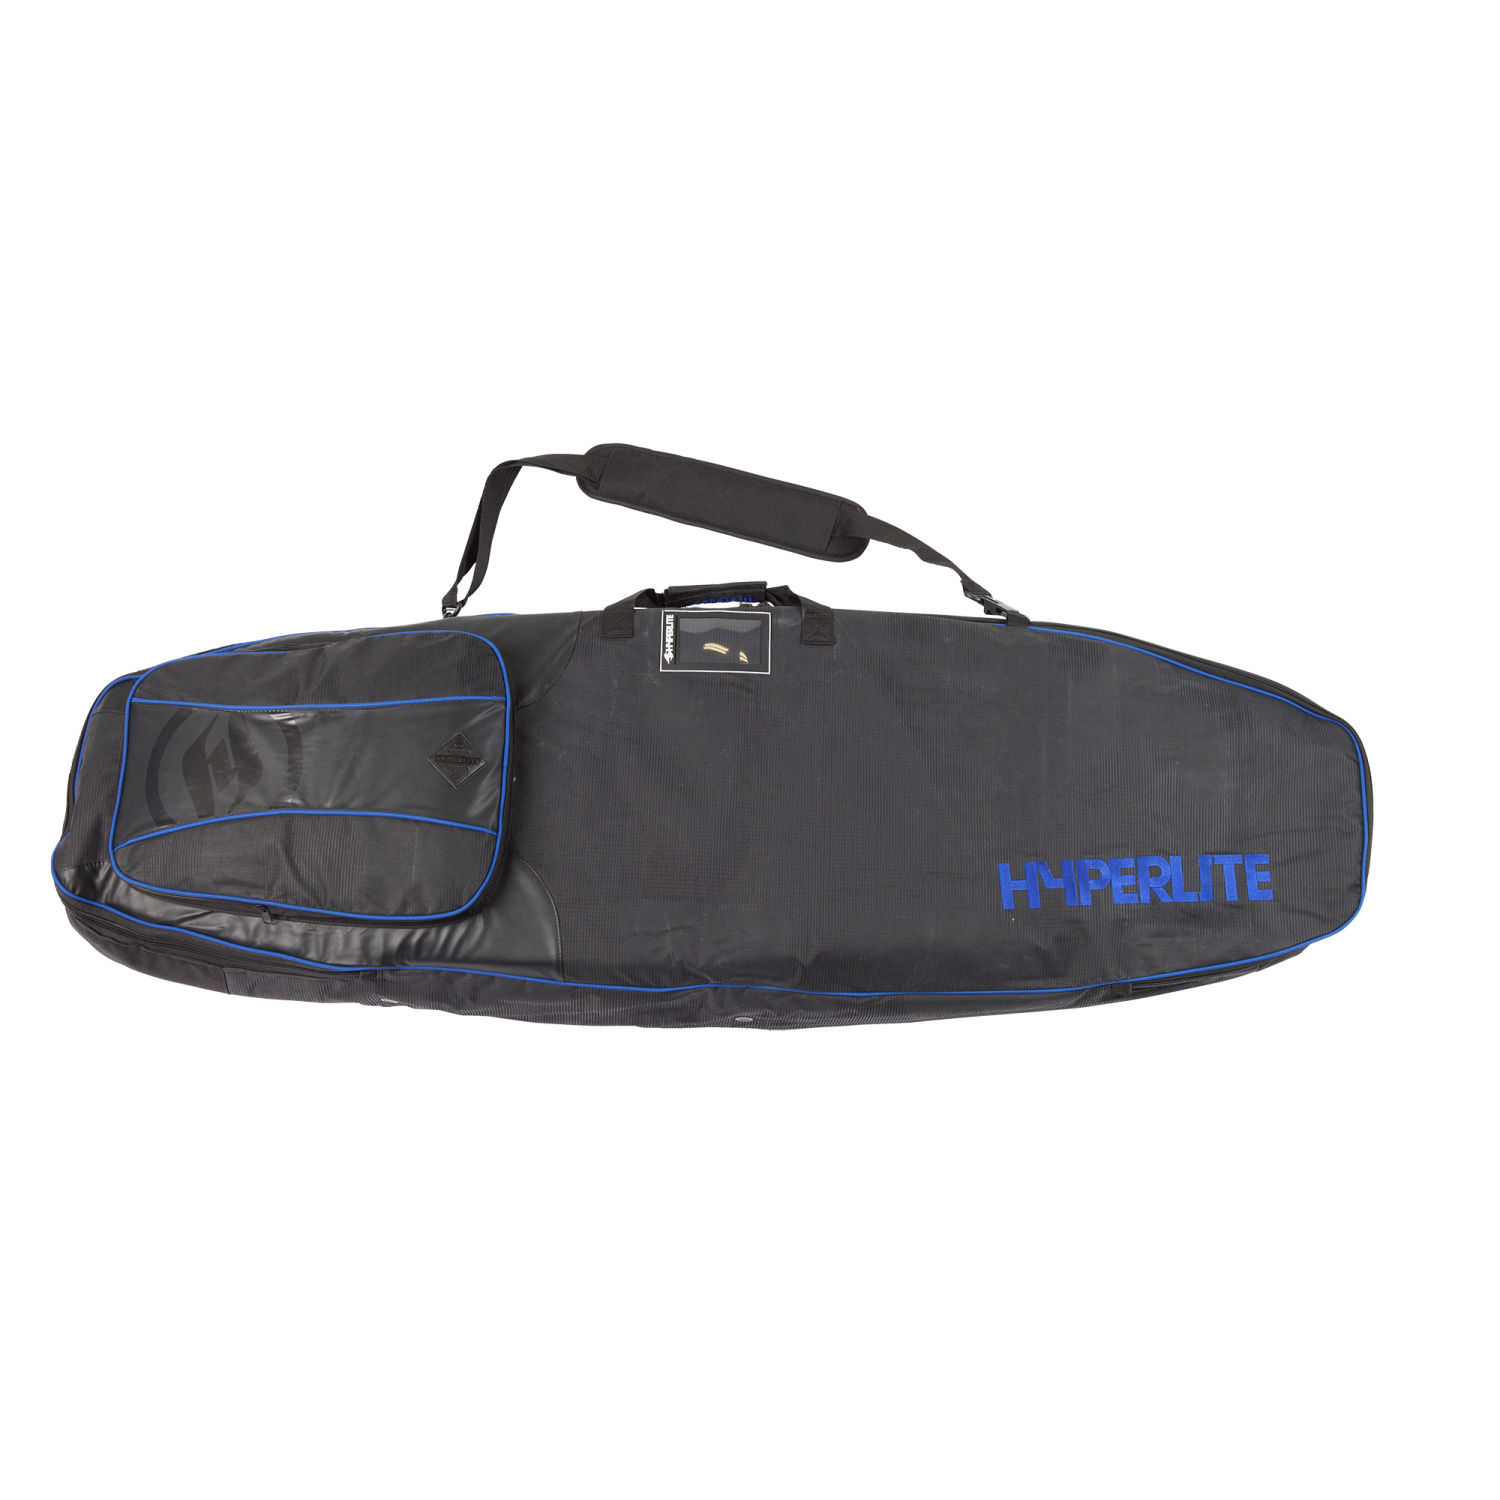 Hyperlite Producer Board Bag